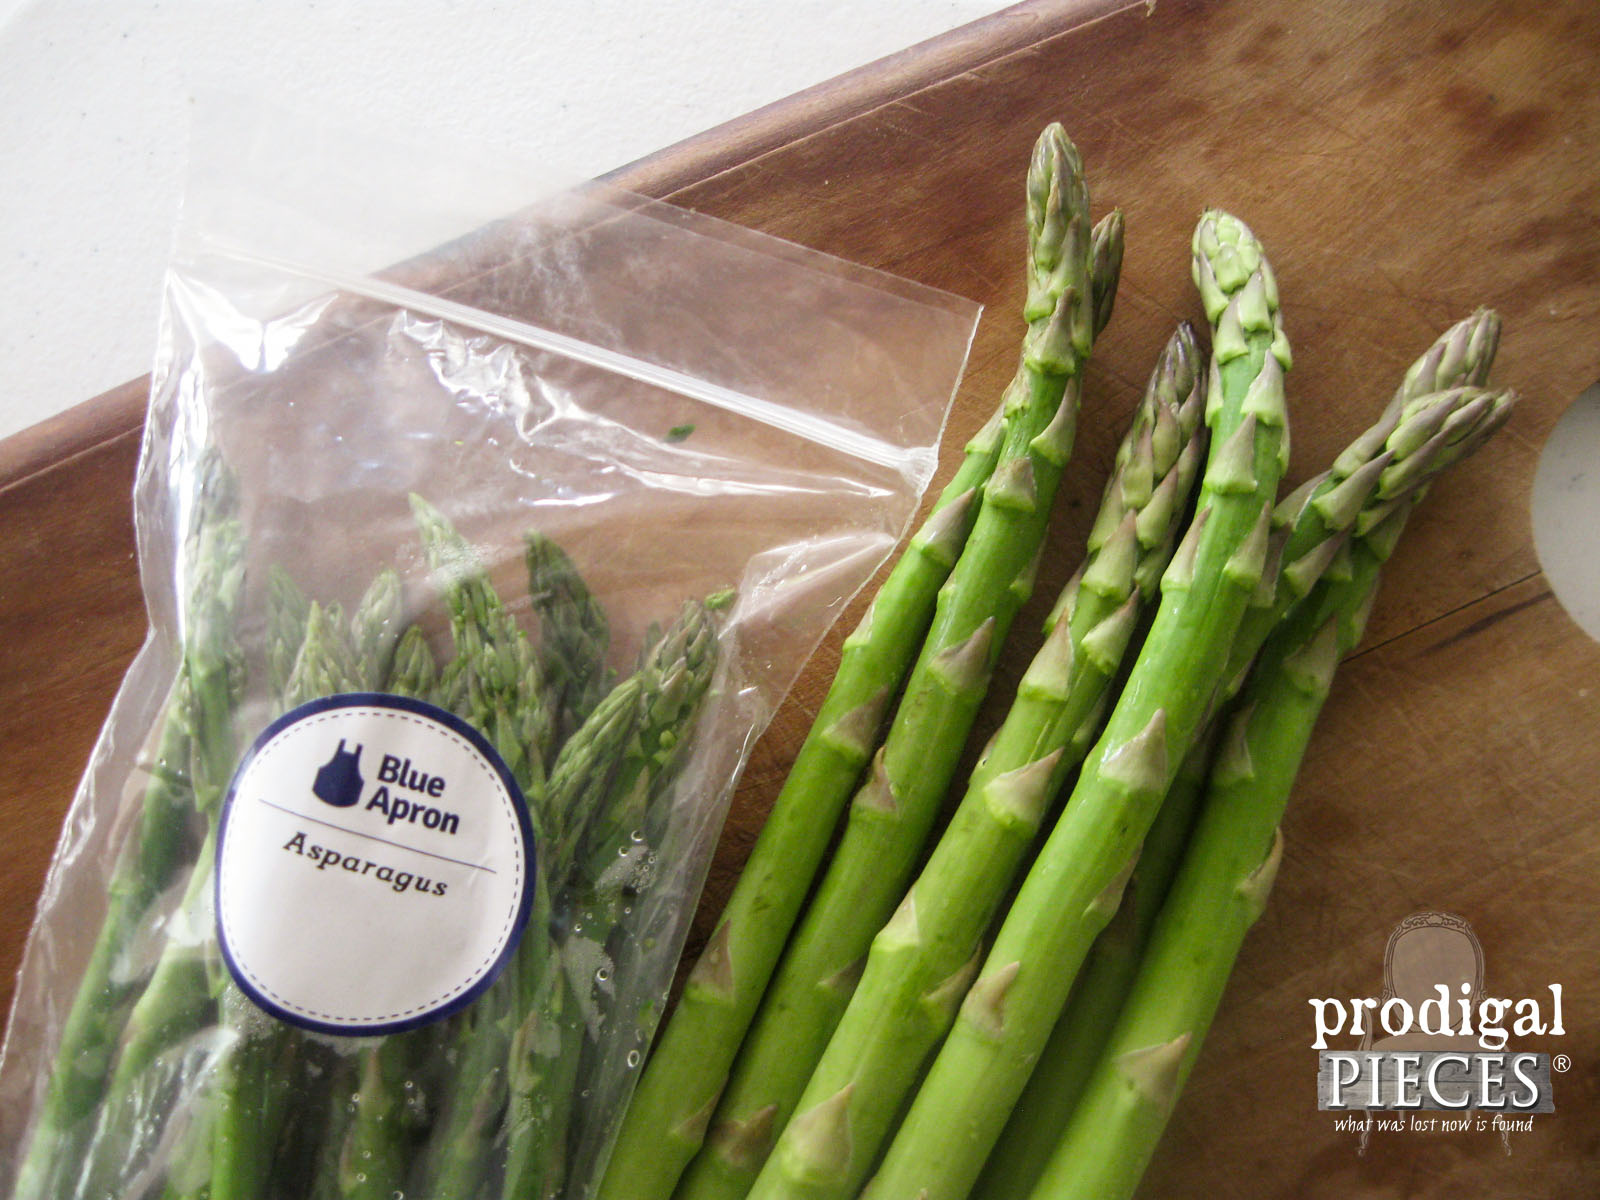 Freshly Packaged Asparagus from Blue Apron | Prodigal Pieces | www.prodigalpieces.com